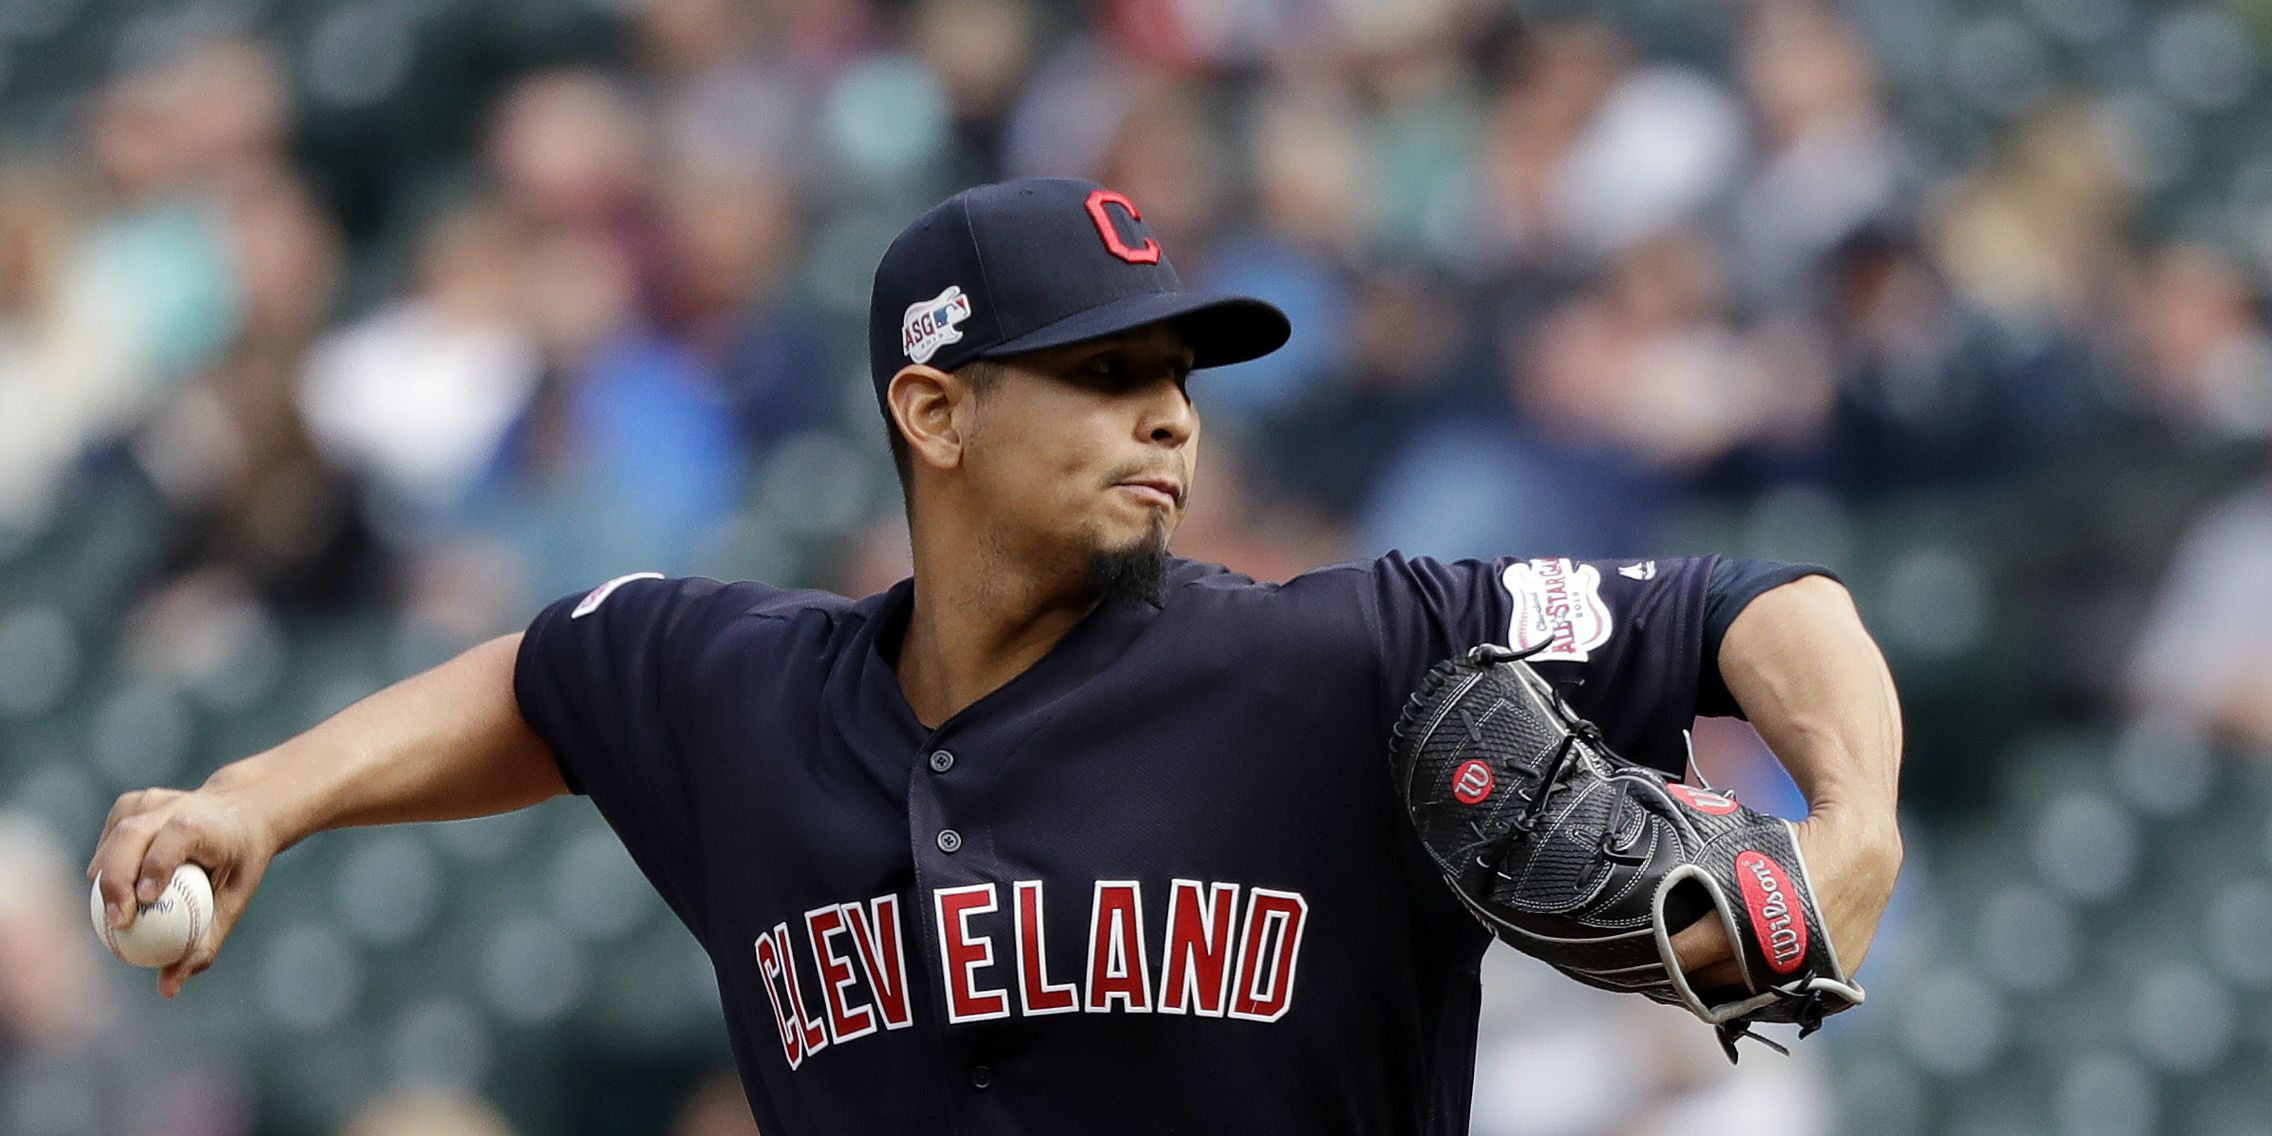 Cleveland rallies behind Indians pitcher Carlos Carrasco after announcing his leukemia diagnosis